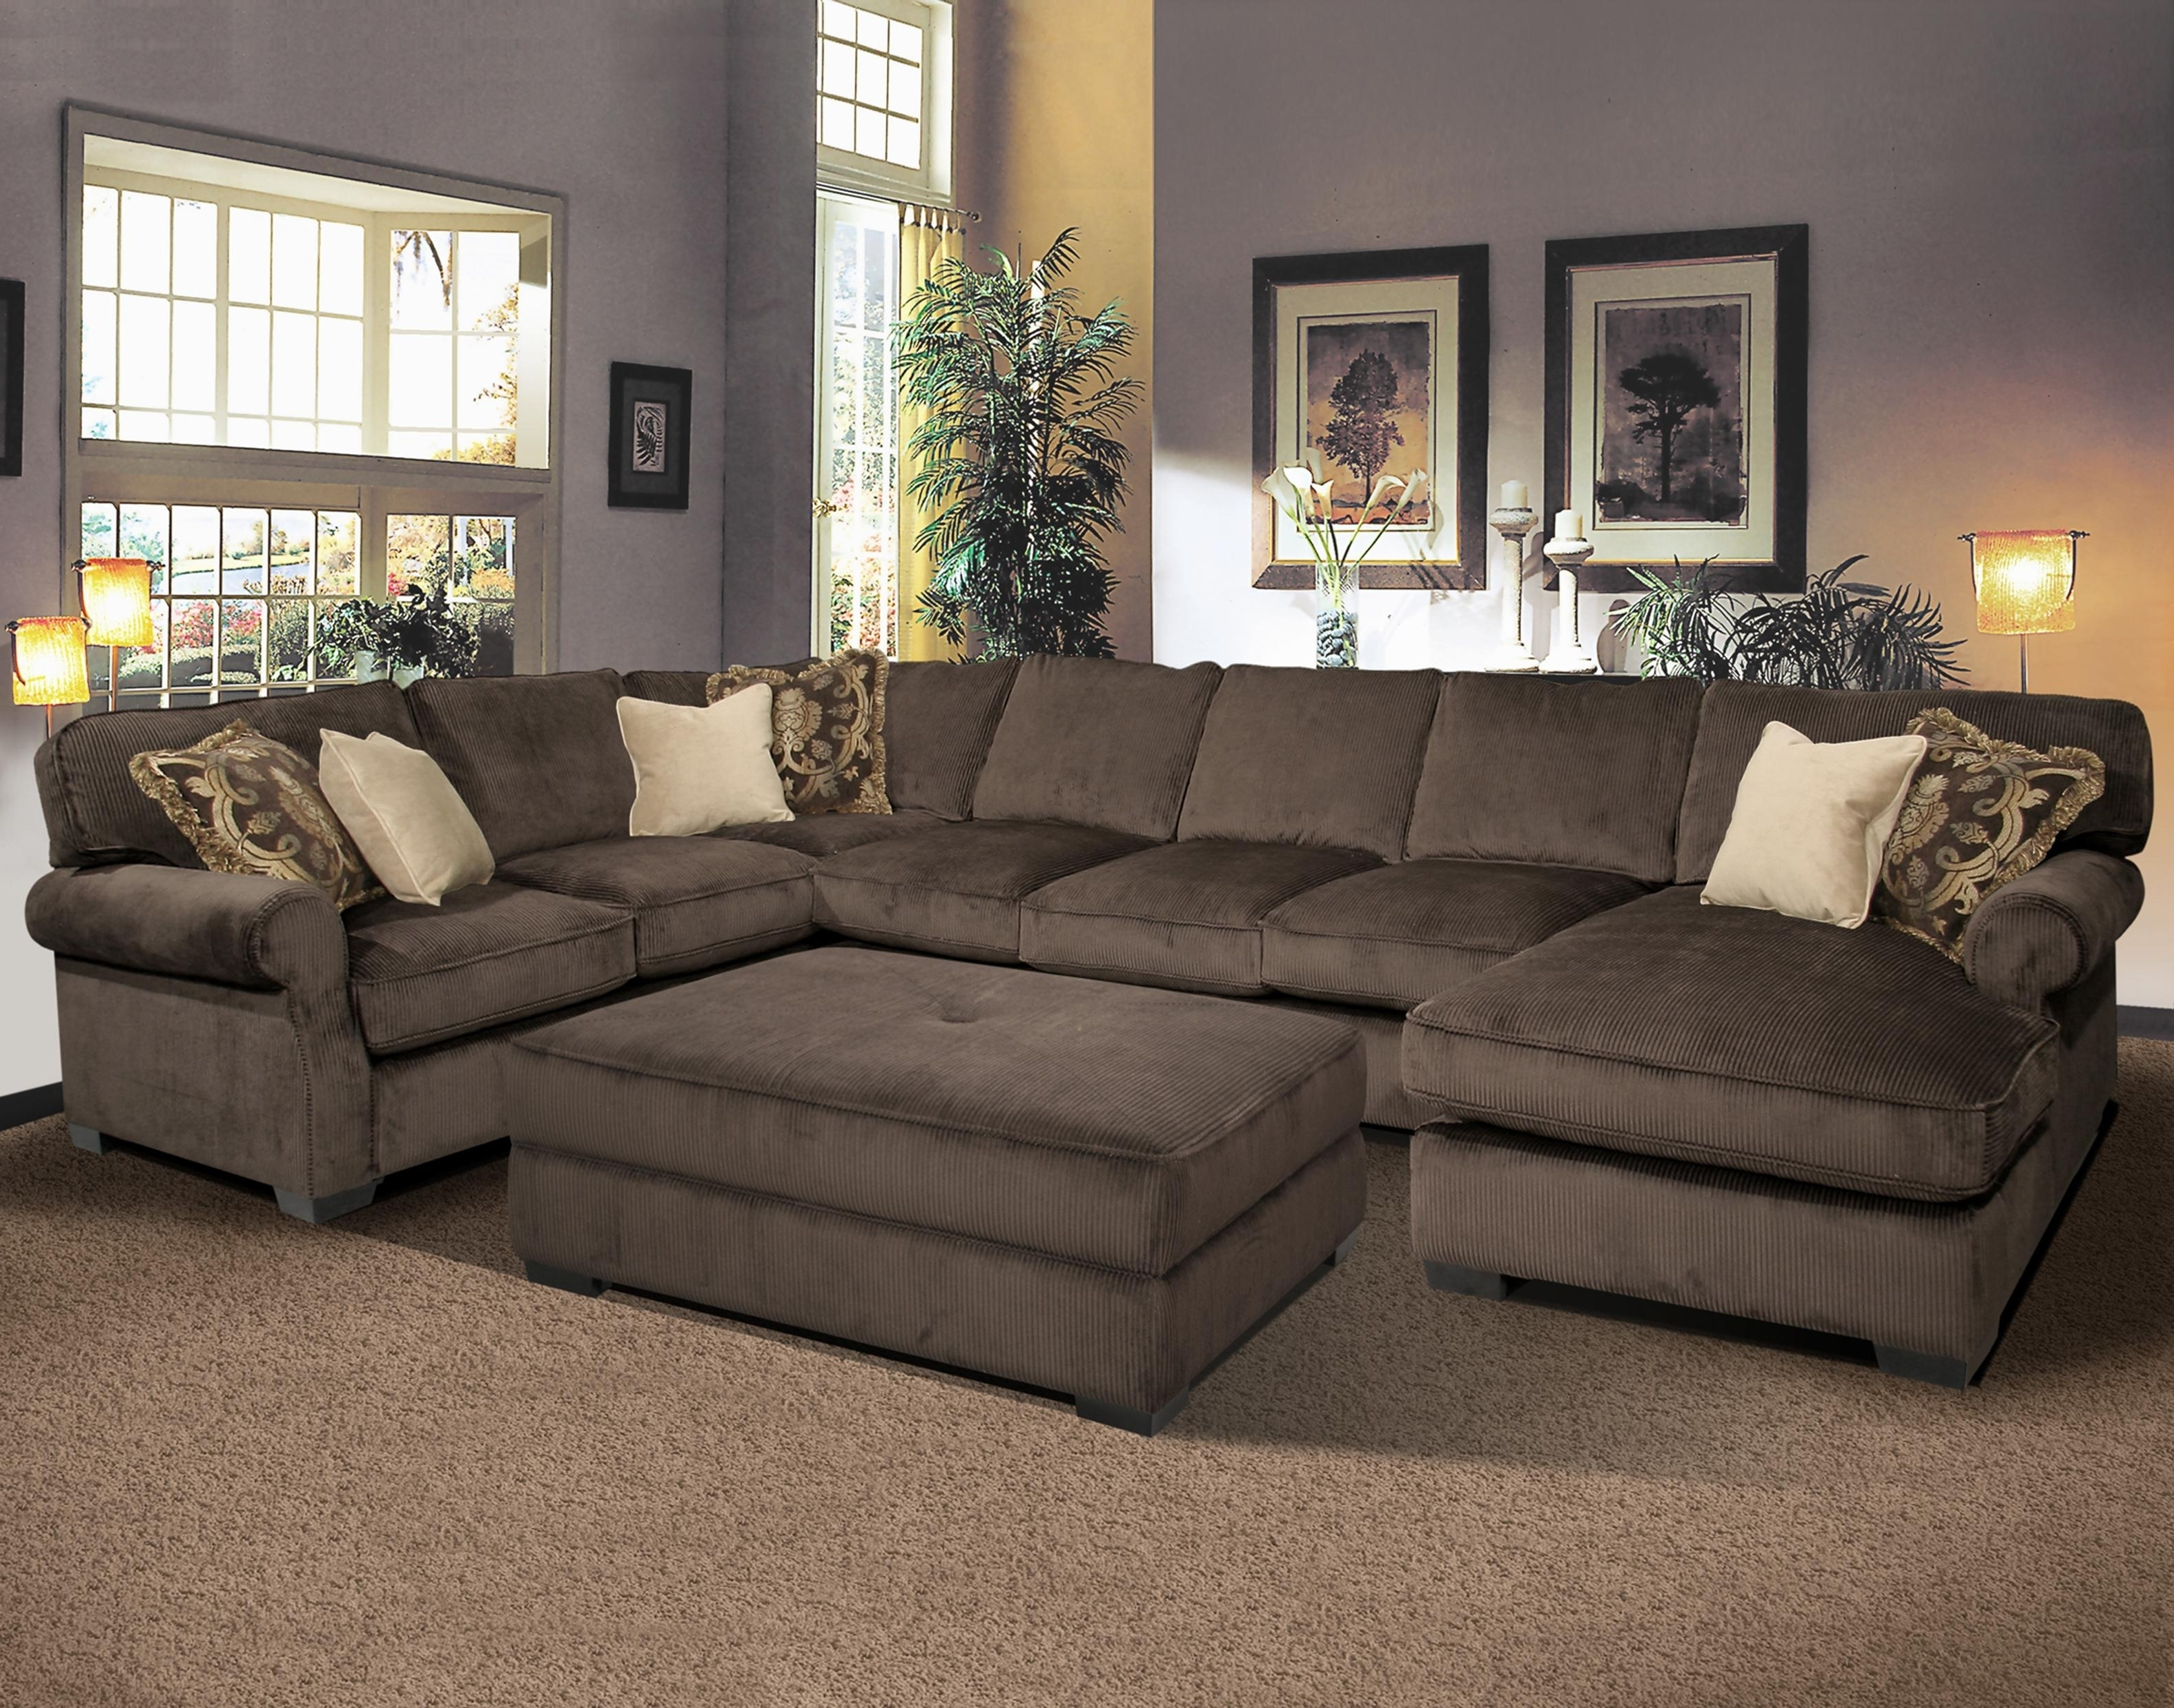 Popular Decorate Deep Sectional Sofa With Pillows The Decoras Intended For Sectional Sofas Decorating (View 7 of 15)